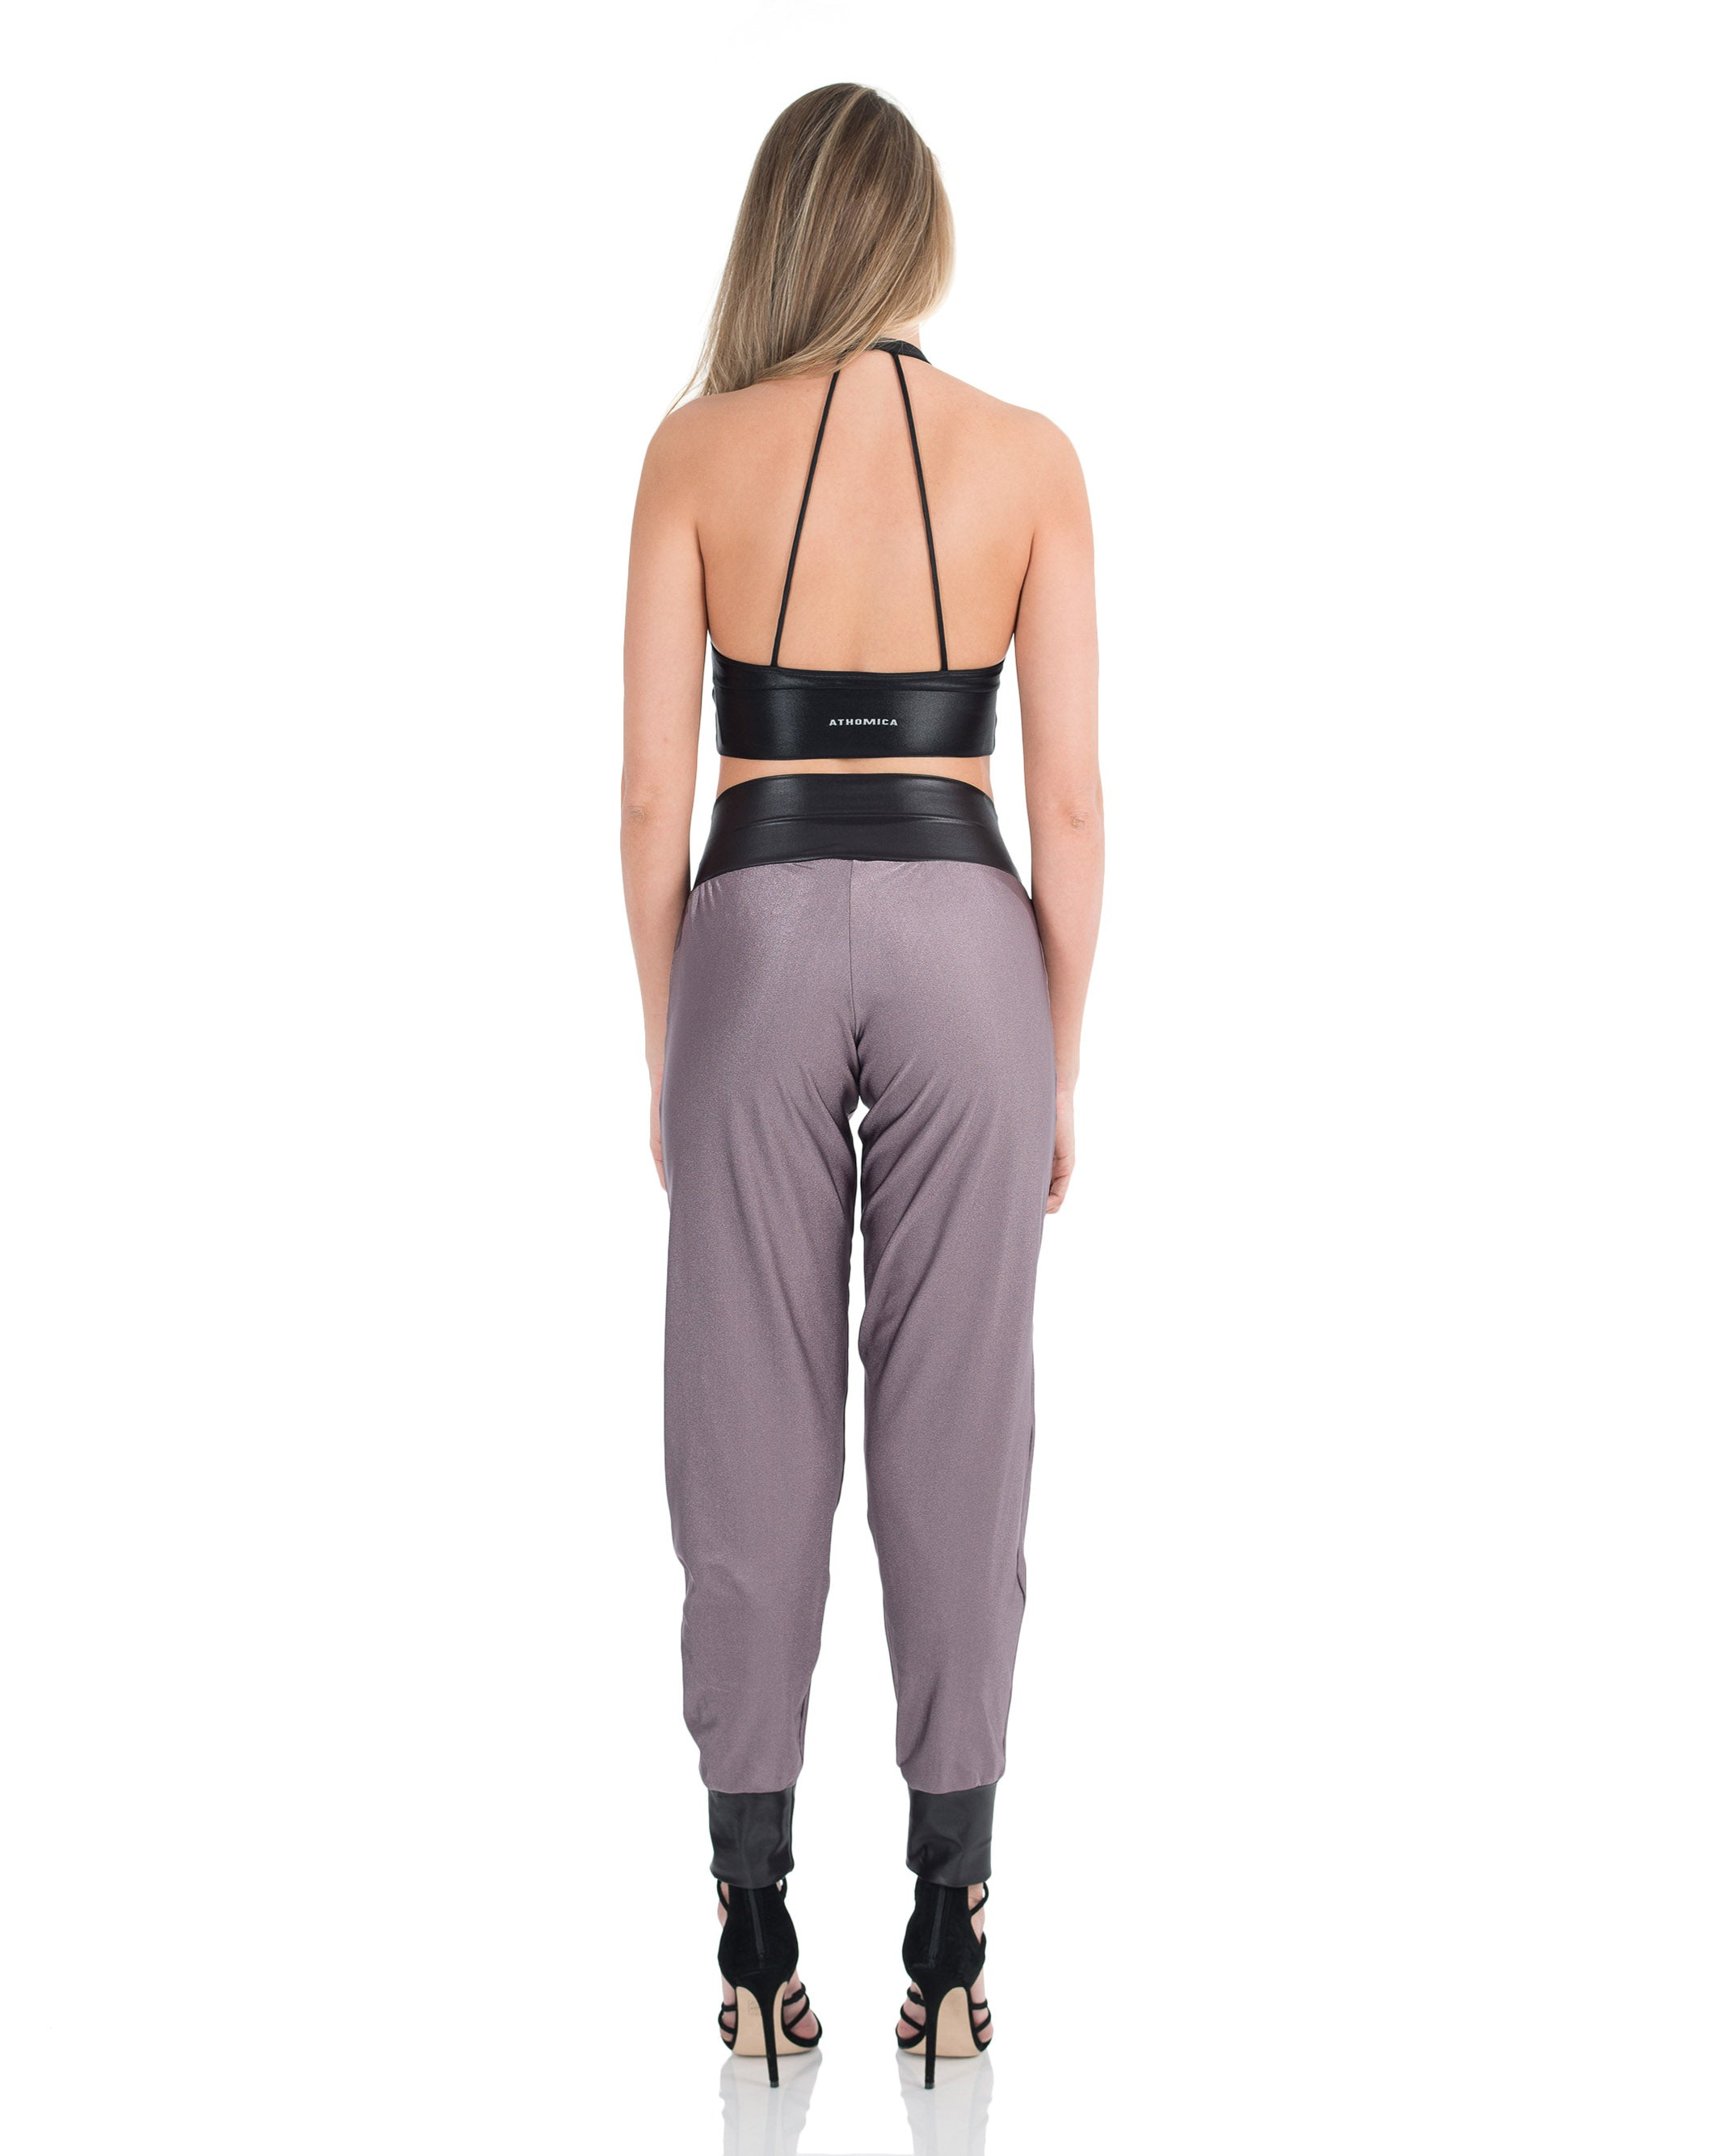 Metallic Jogging Leggings - Alchemy Purple - AVESSA